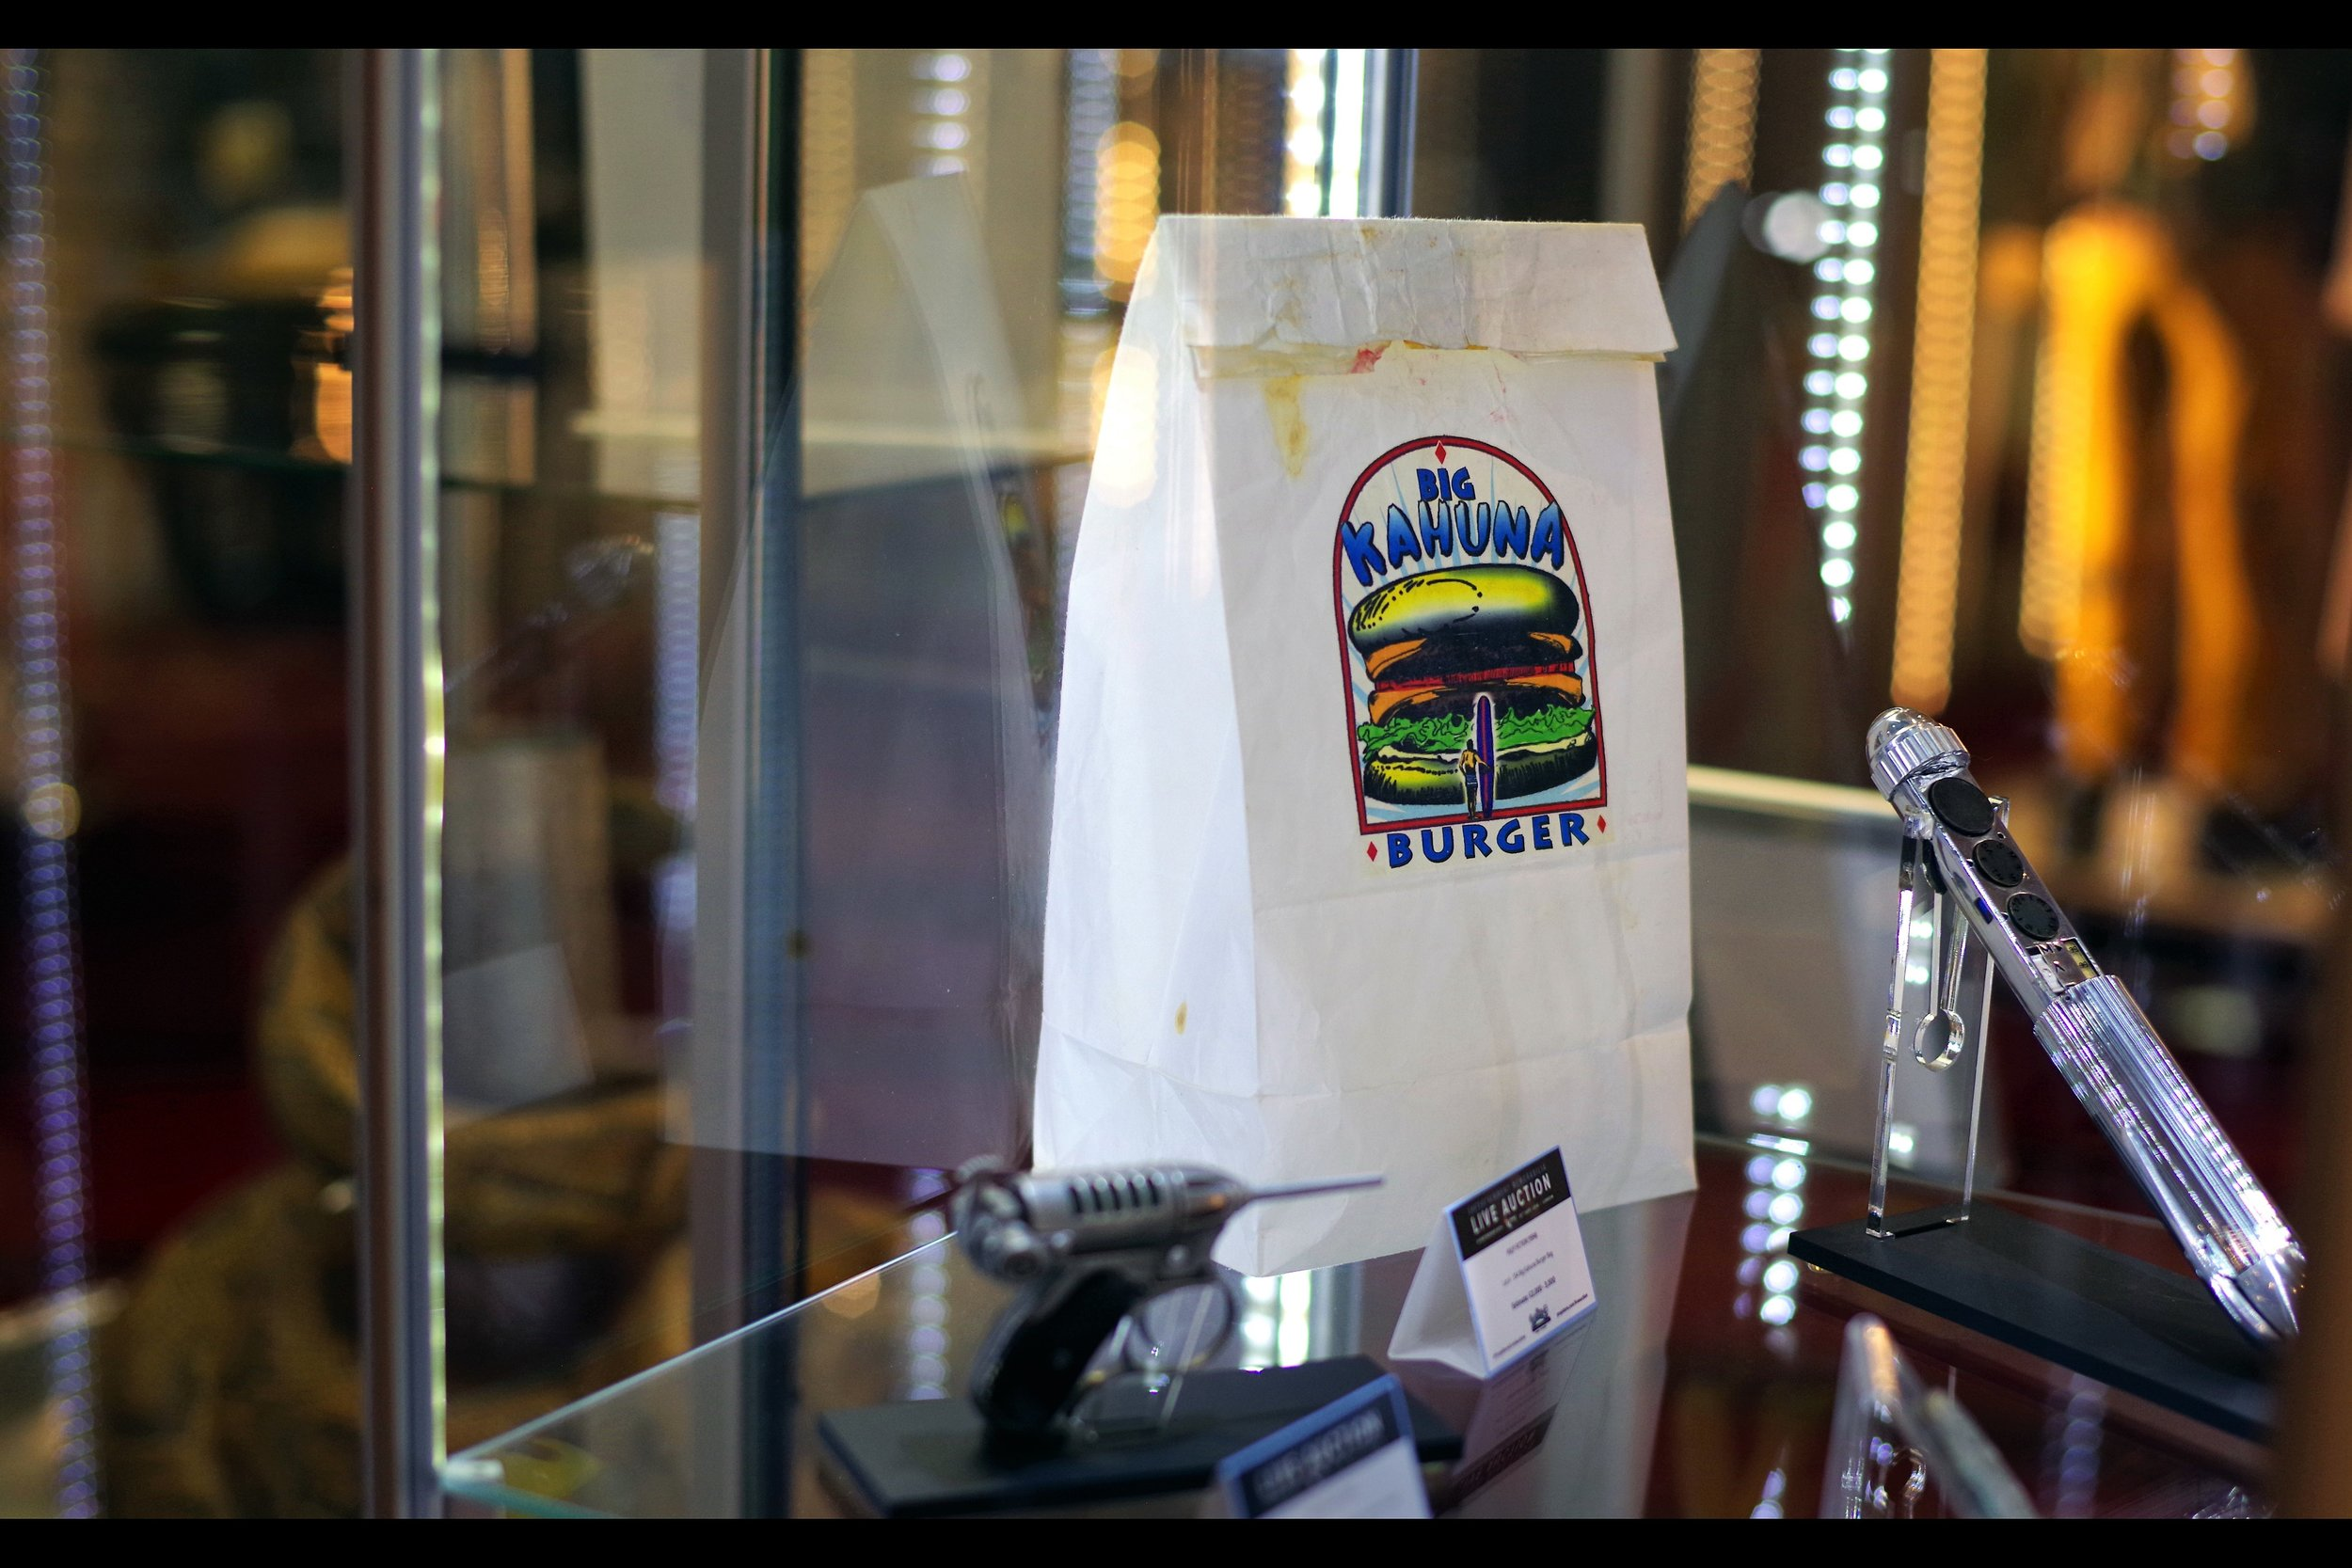 """""""You don't want to look inside. Buy it if you must, but I looked inside earlier, and I'm telling you : you don't want to look inside""""  Pulp Fiction Big Kahuna Burger Bag. (Winning bid £2,000)"""